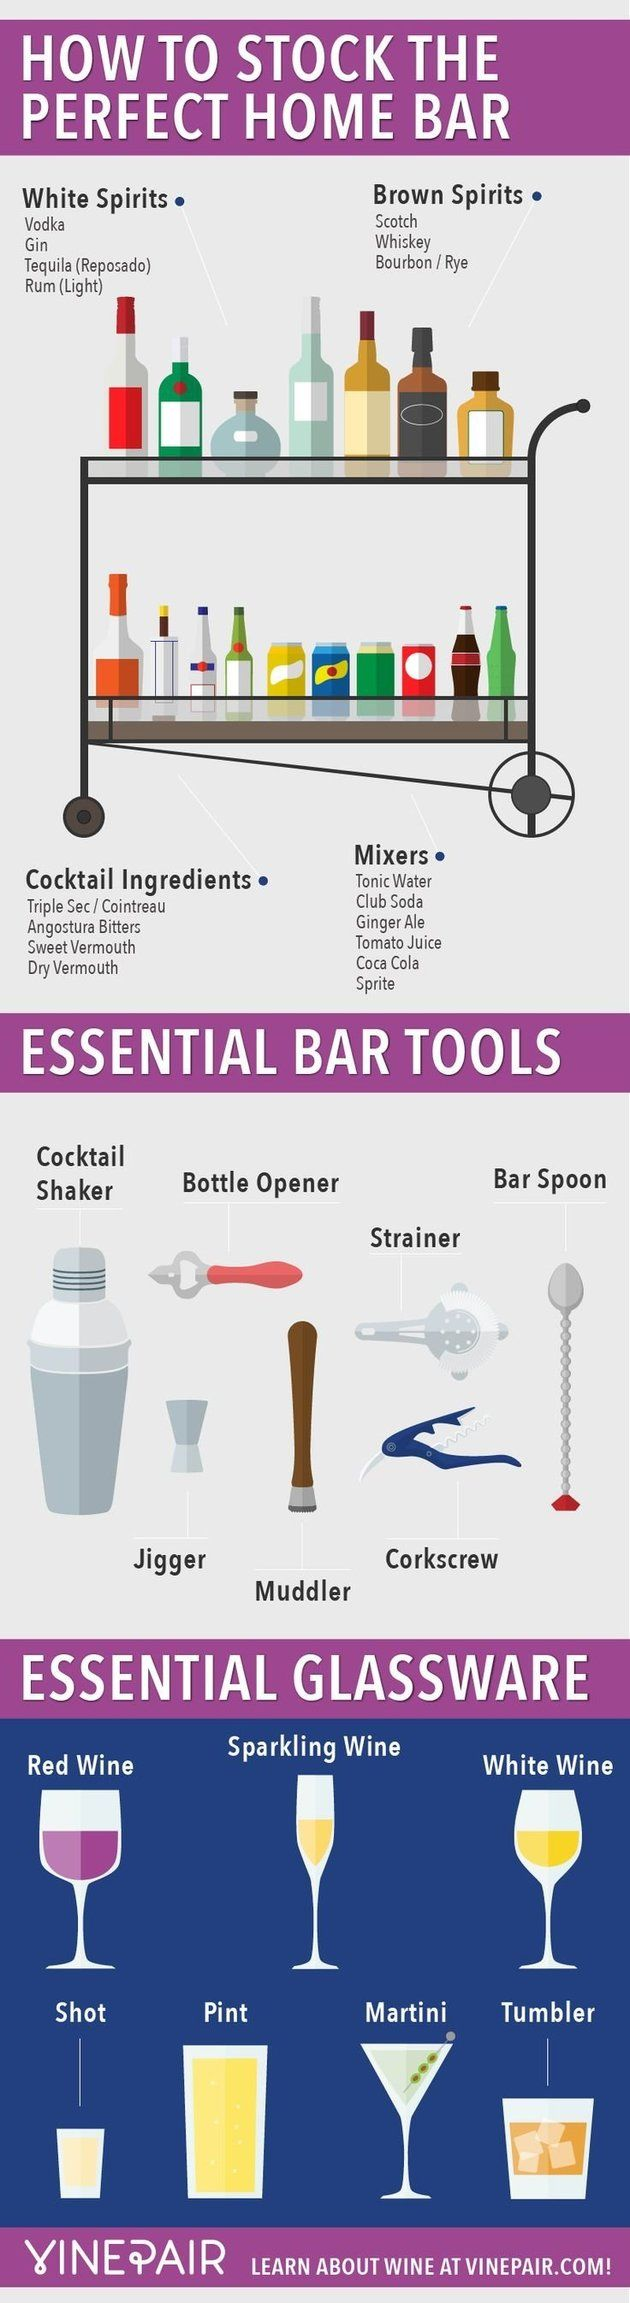 You are this awesome chart away from becoming a bar tender.